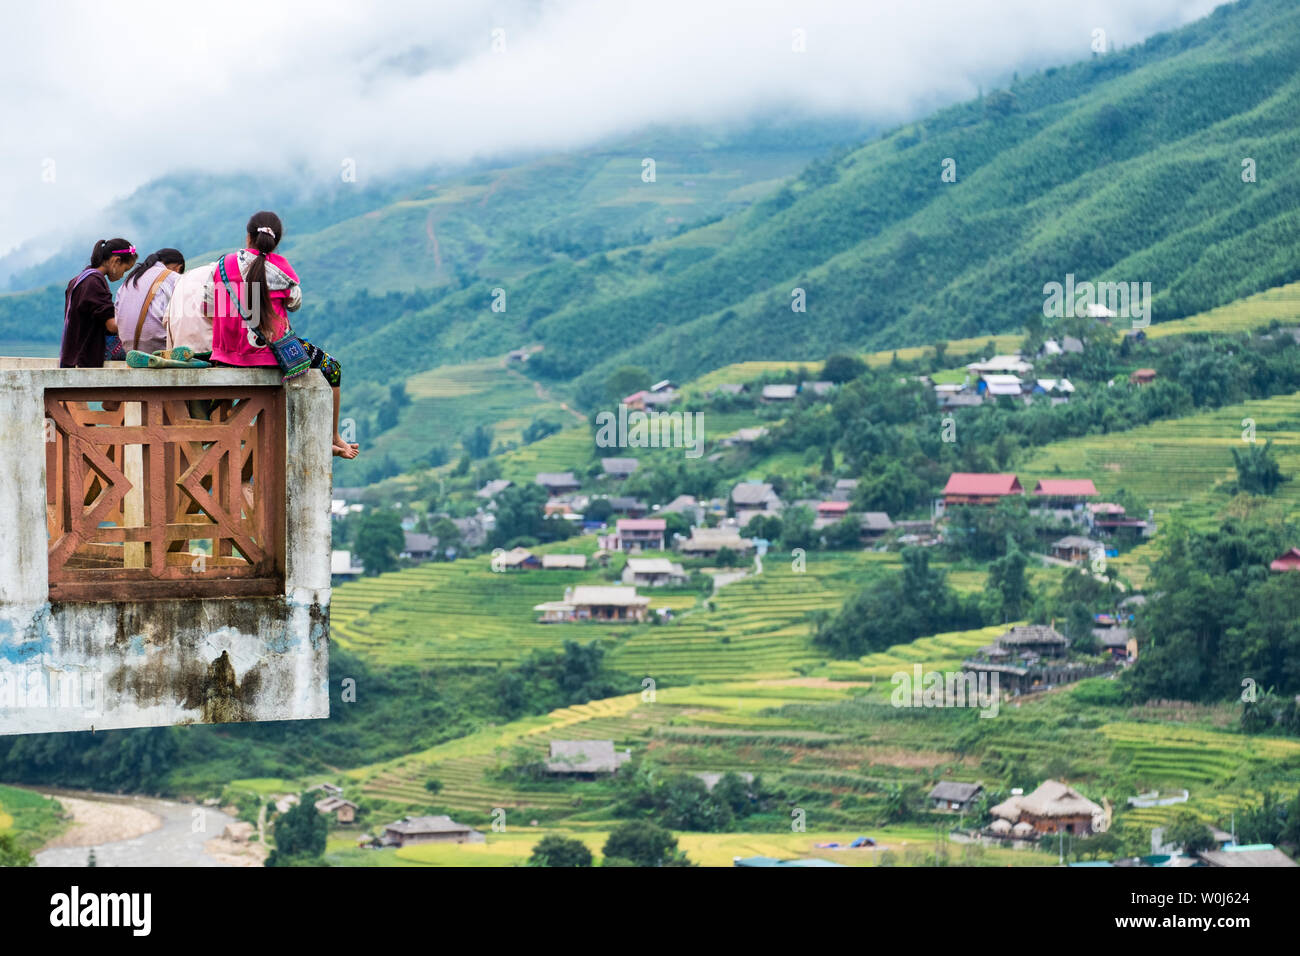 Sapa, Vietnam - Sep 08 2017 : Young girl tribe group sitting on terrace and view village on rice terraced in valley - Stock Image